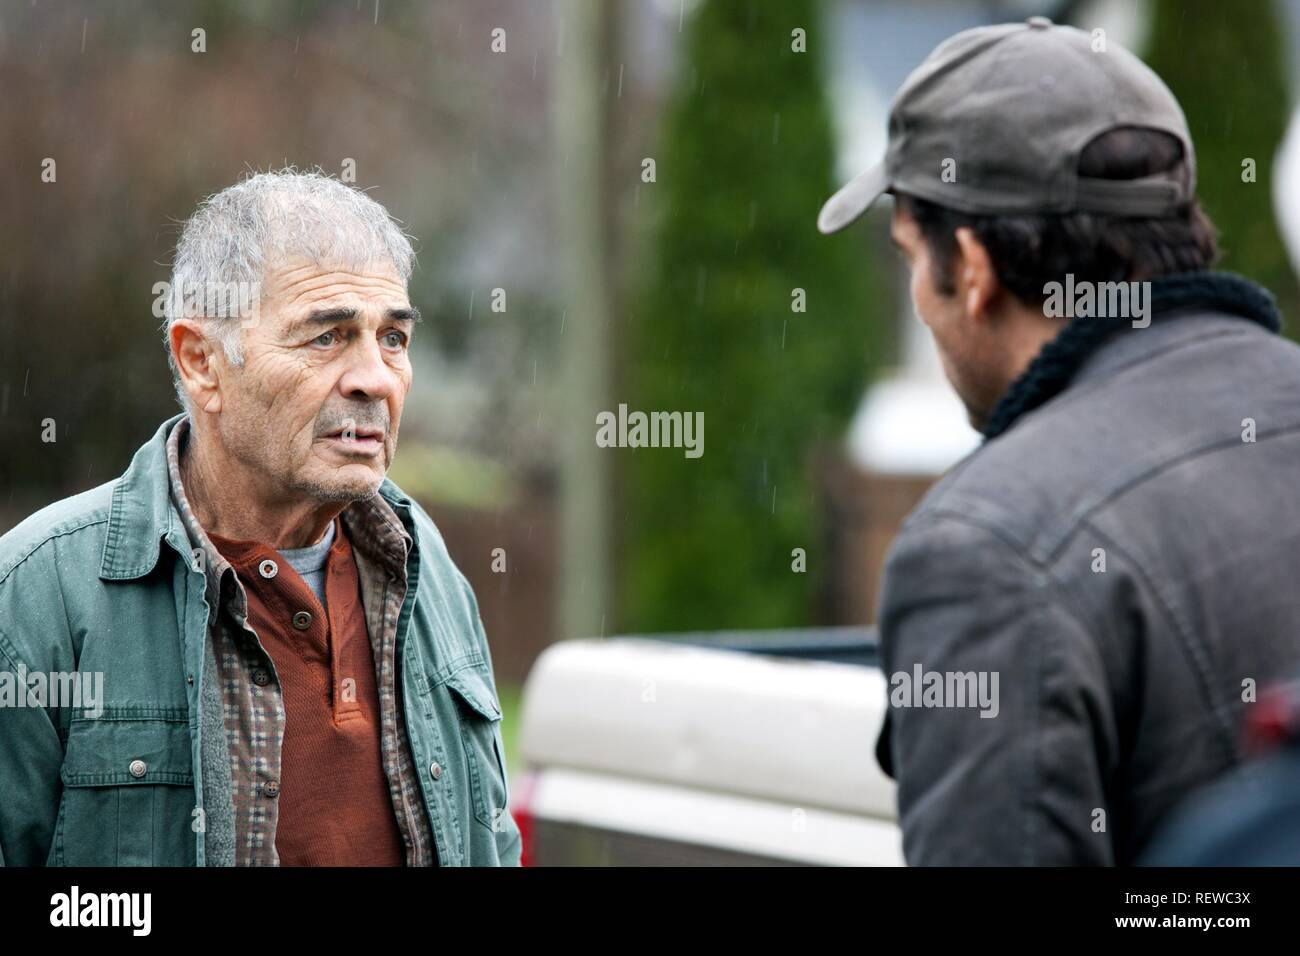 ROBERT FORSTER THE CONFIRMATION (2016) - Stock Image